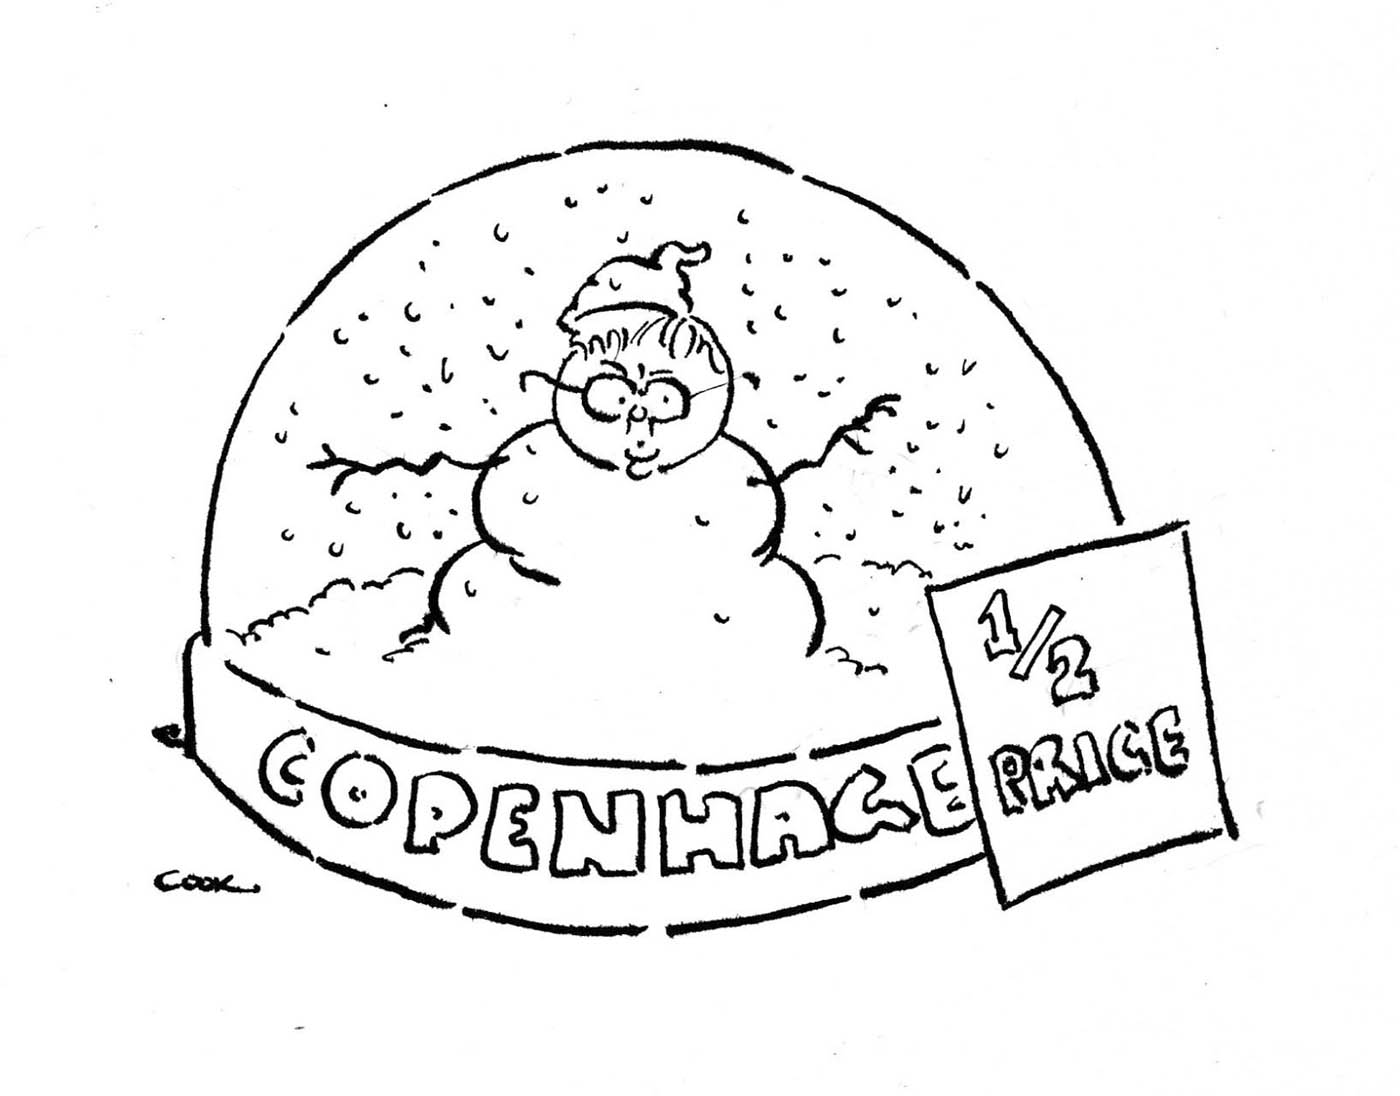 A black and white cartoon depicting a snow dome. In the dome is a snowman that resembles Kevin Rudd. Fake snow is falling around him. Around the base of the snowdome is written 'Copenhagen'. A sign leaning against the right side of the snowdome says 'half price'. - click to view larger image